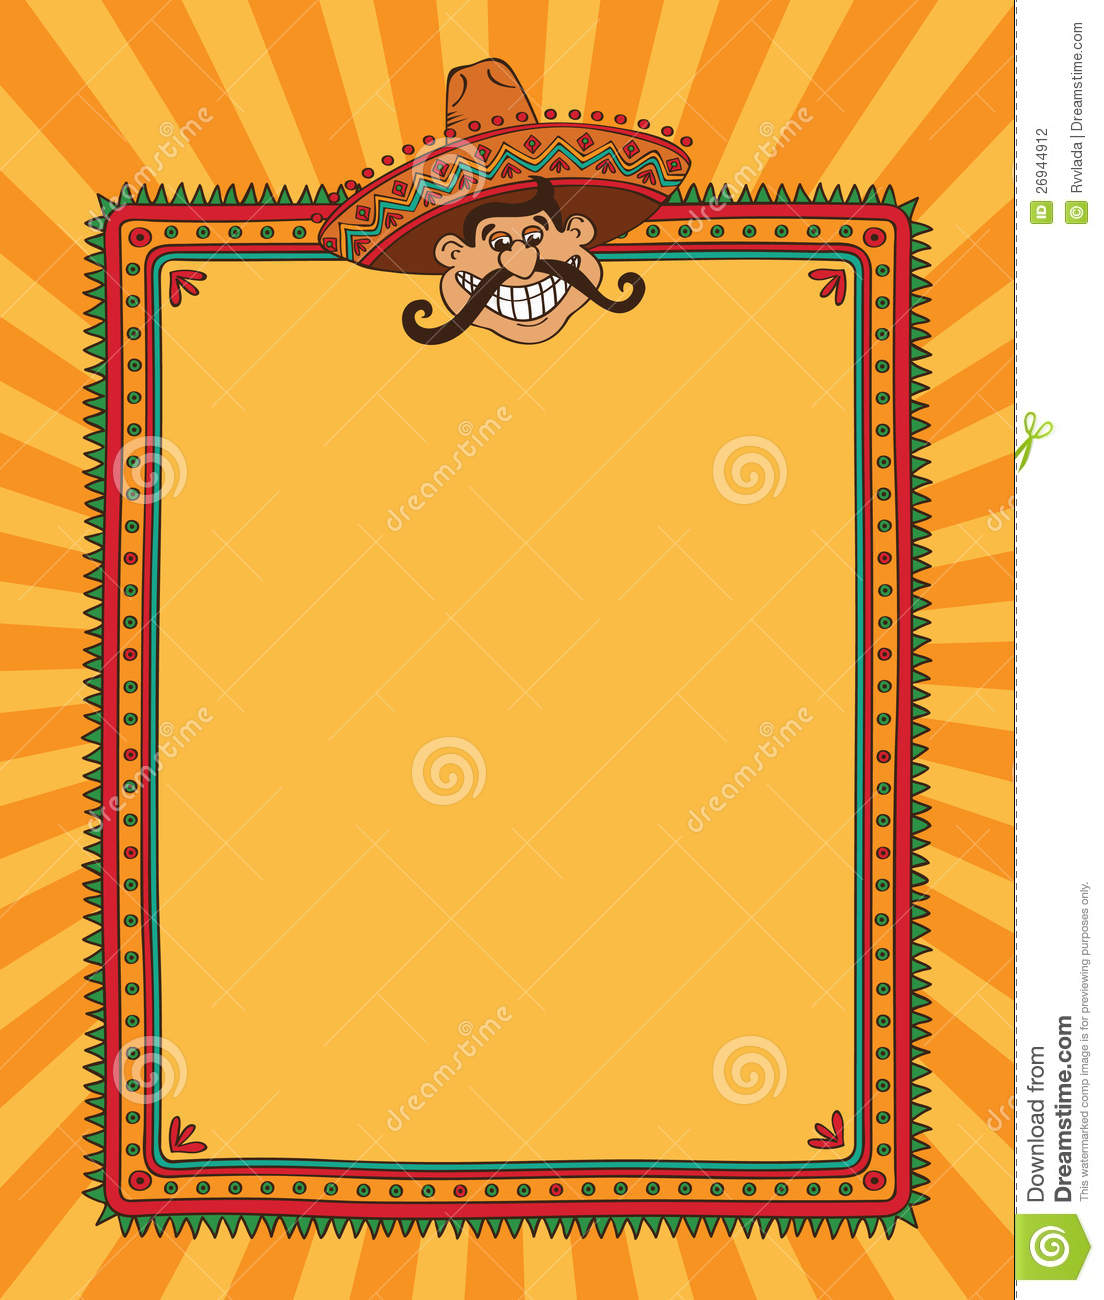 Mexican Fiesta Border Frame With Man In 1104x1300